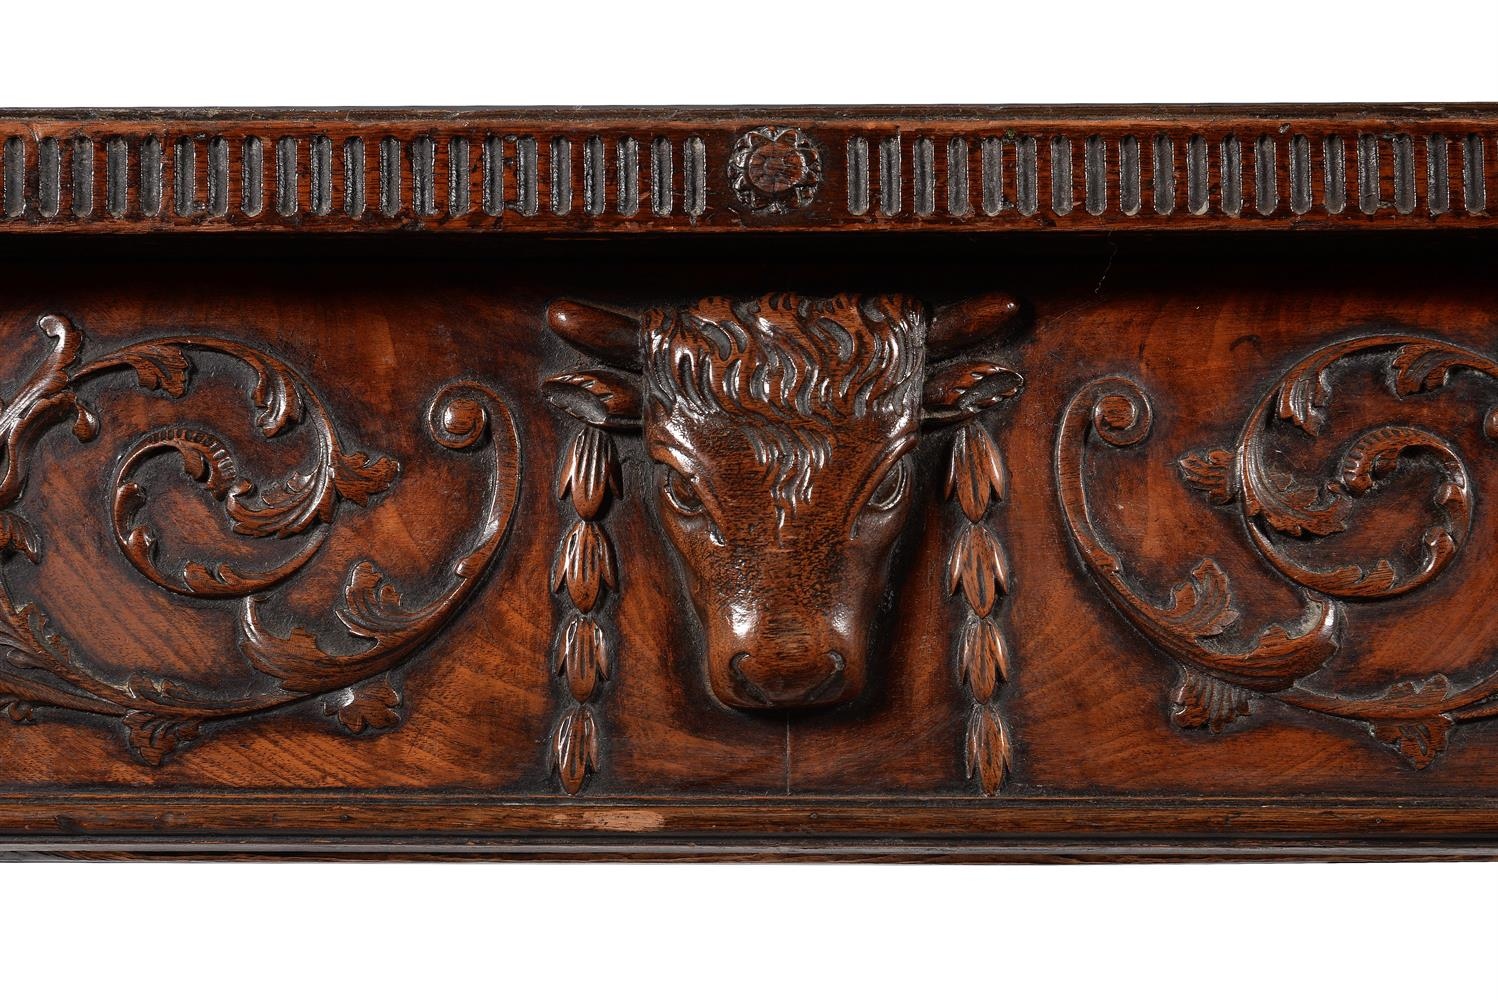 A GEORGE III MAHOGANY SERVING OR HALL TABLE, CIRCA 1785 - Image 4 of 6